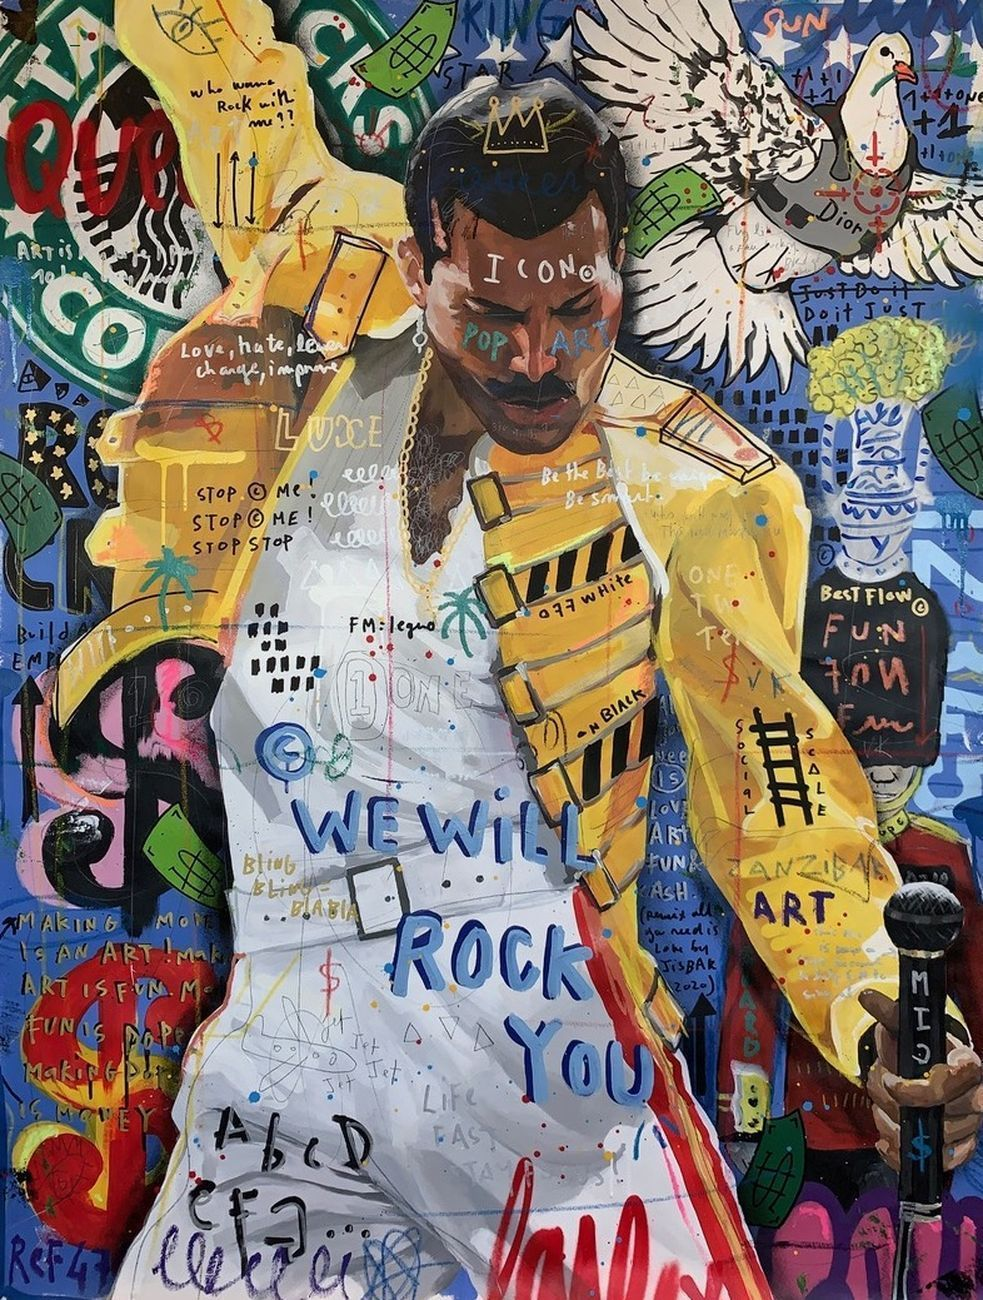 We will rock you, 2020, mixed media on canvas, 97x130cm